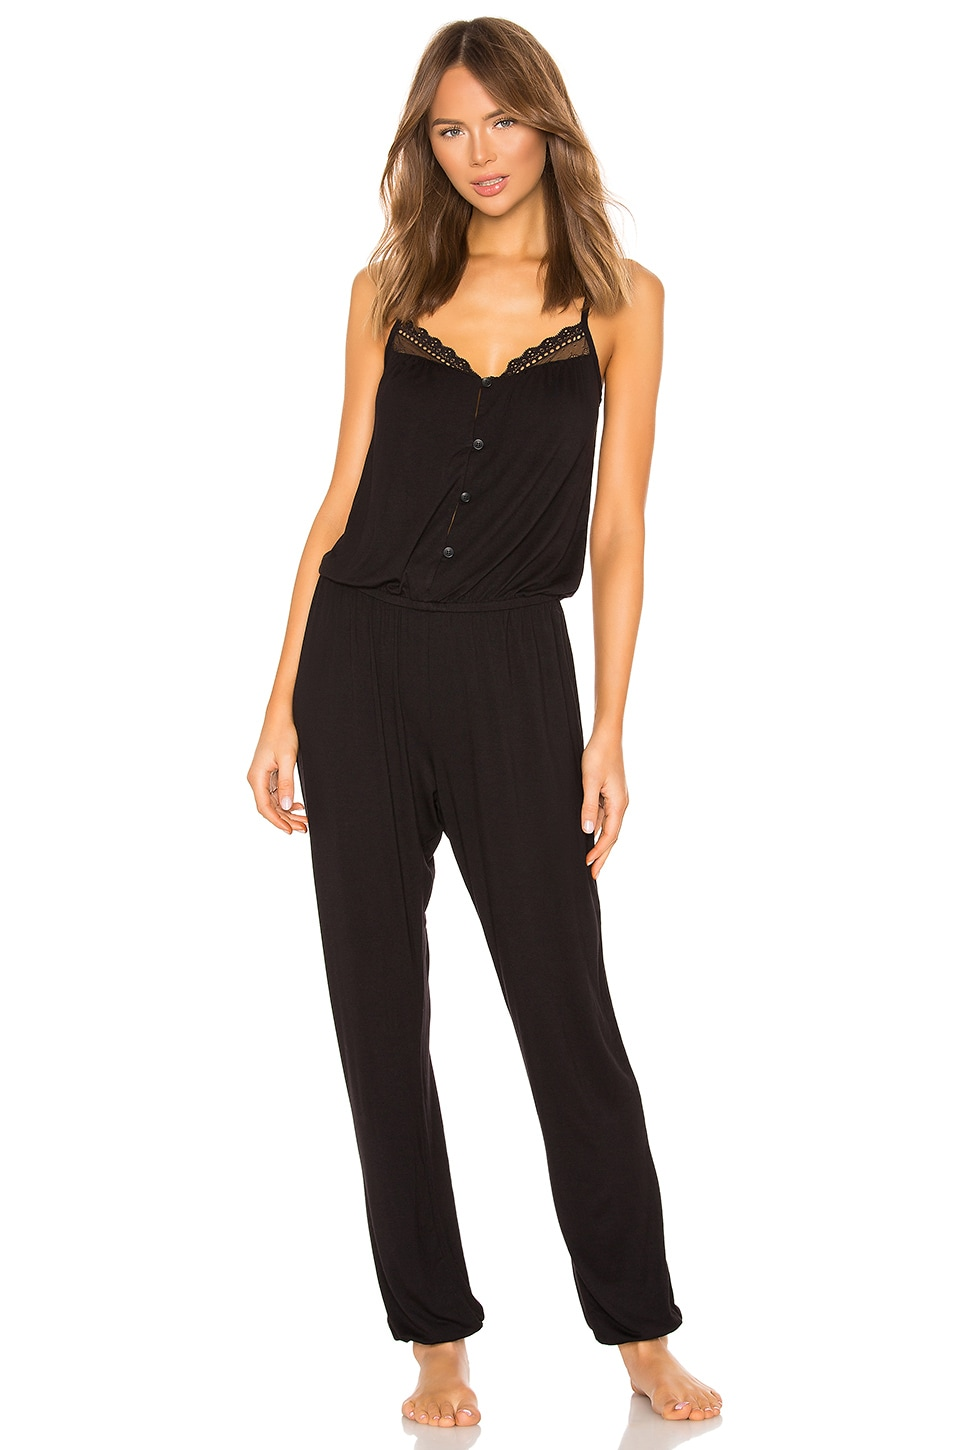 eberjey Lucie Button Down Jumpsuit in Black